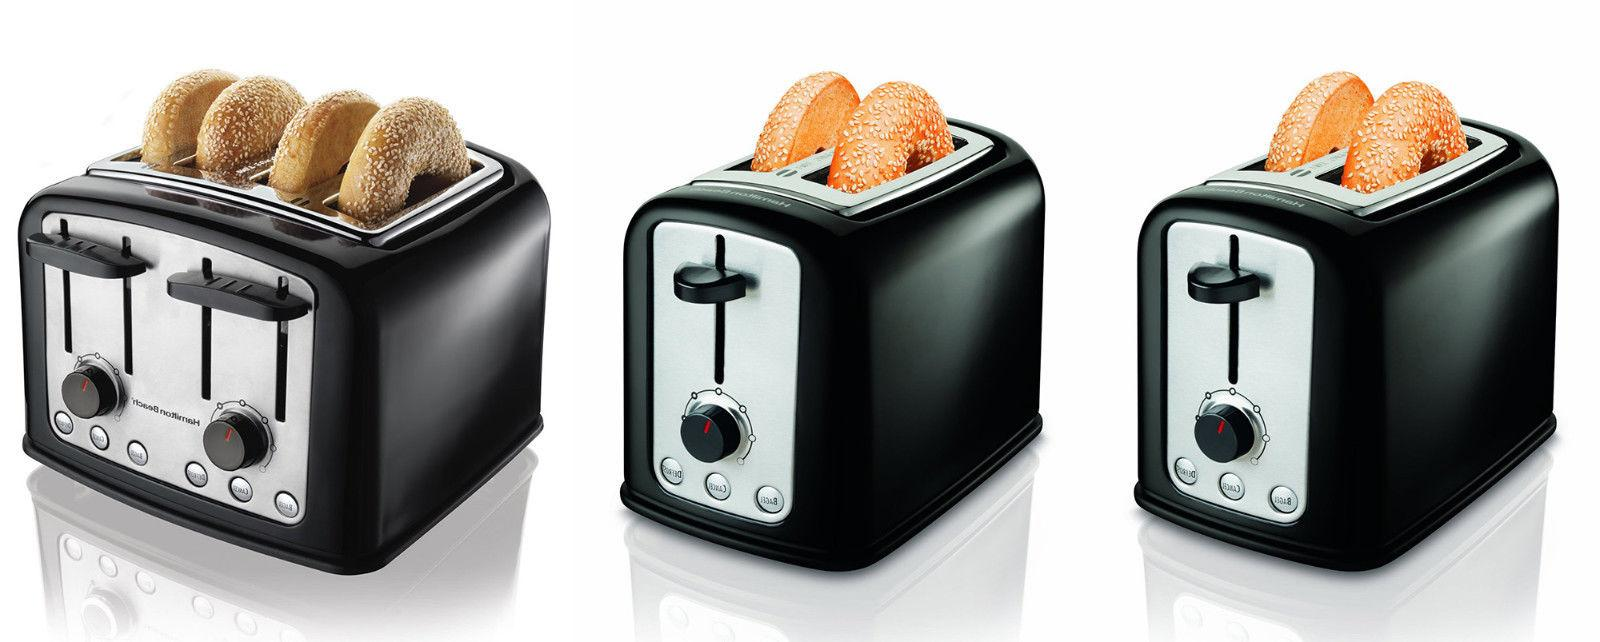 Hamilton Beach SmartToast Cool-Touch 2, 4 Slice Slot Toaster